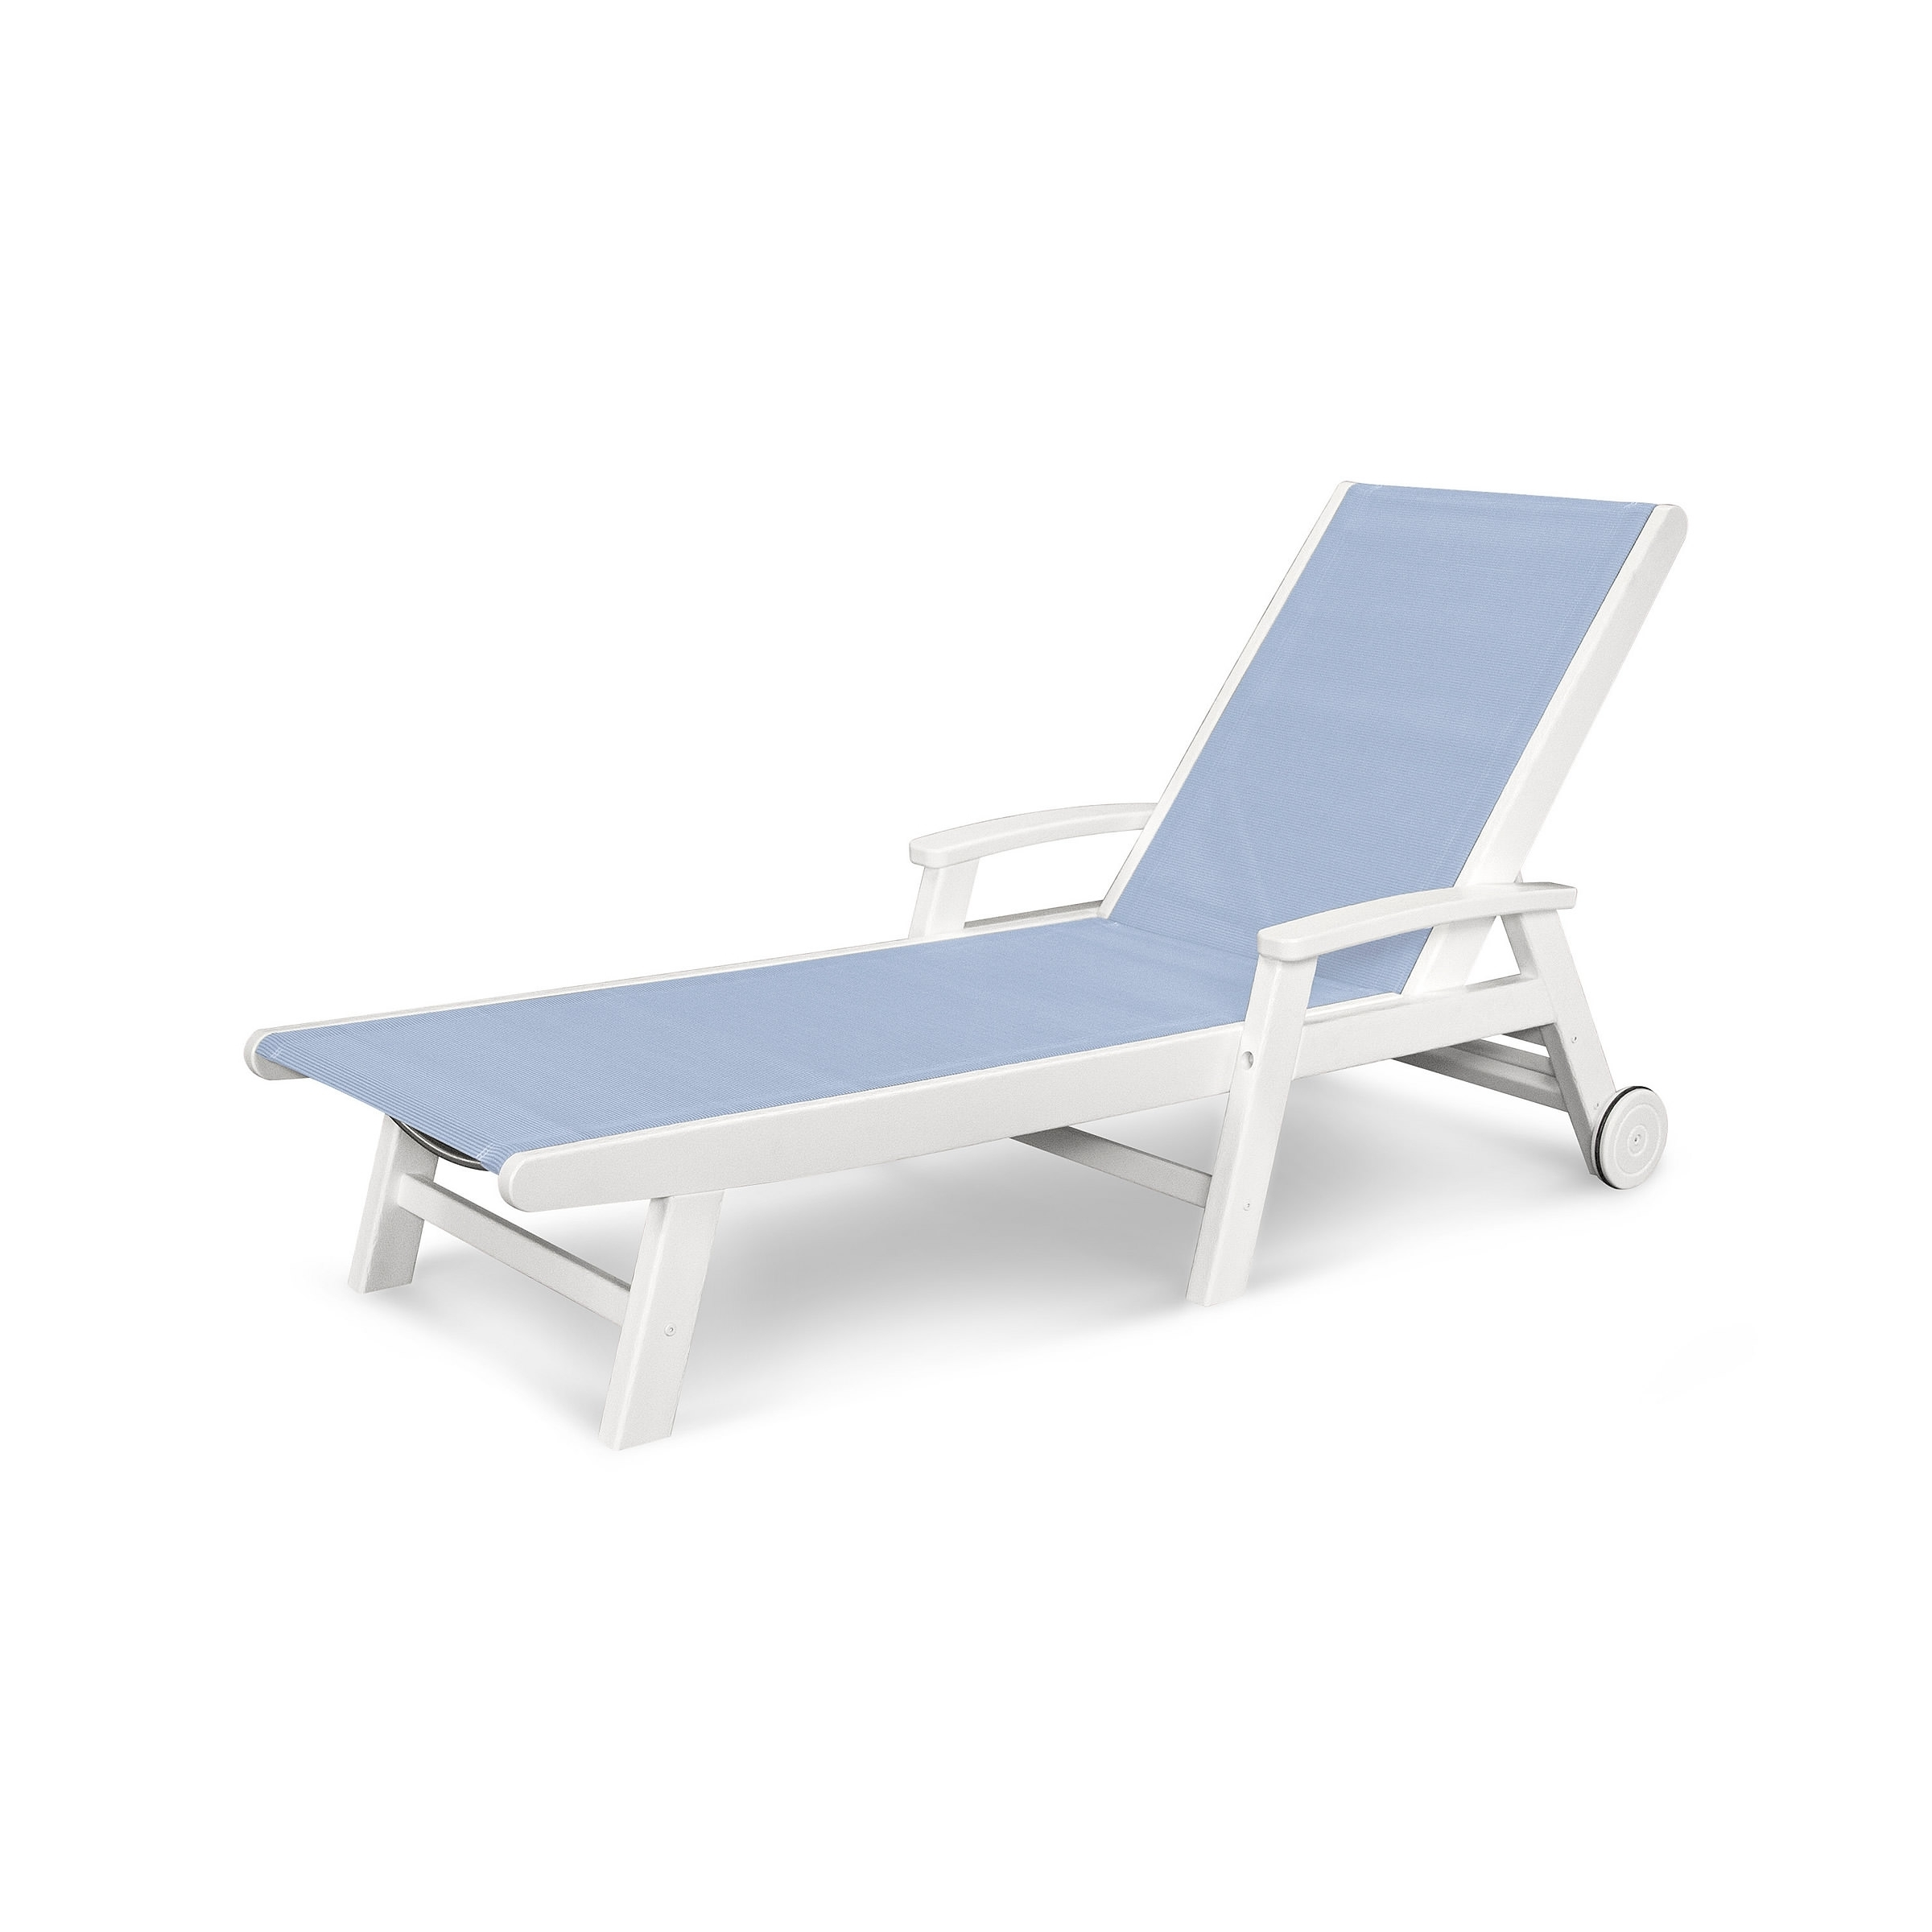 Resin Chaise Lounge Chairs • Lounge Chairs Ideas Within Favorite Resin Chaise Lounge Chairs (View 12 of 15)